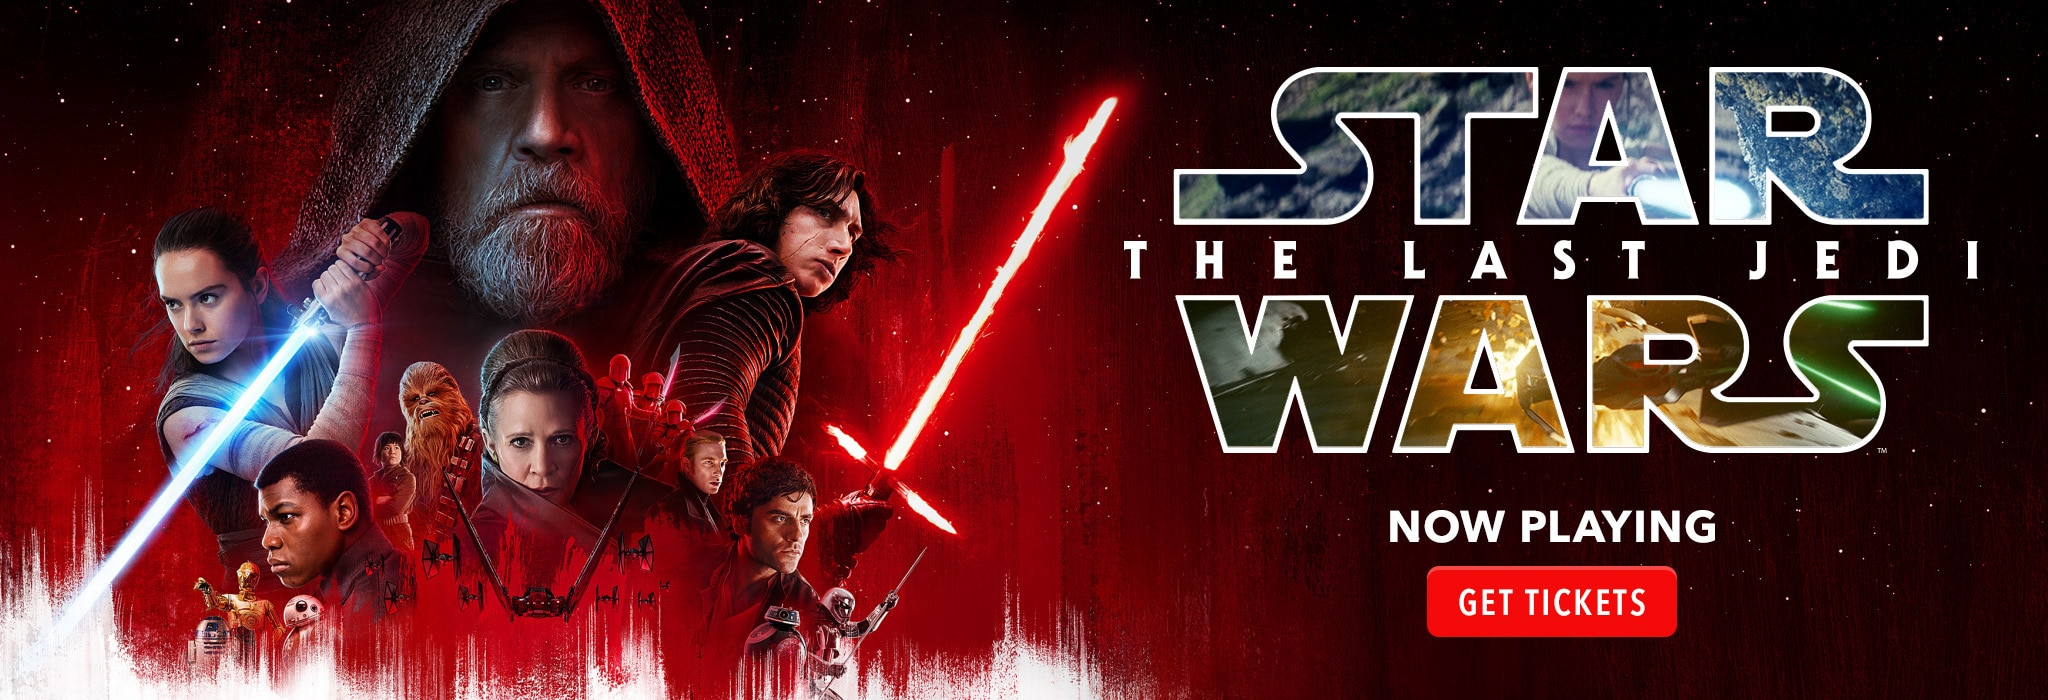 Star Wars The Last Jedi Theatrical